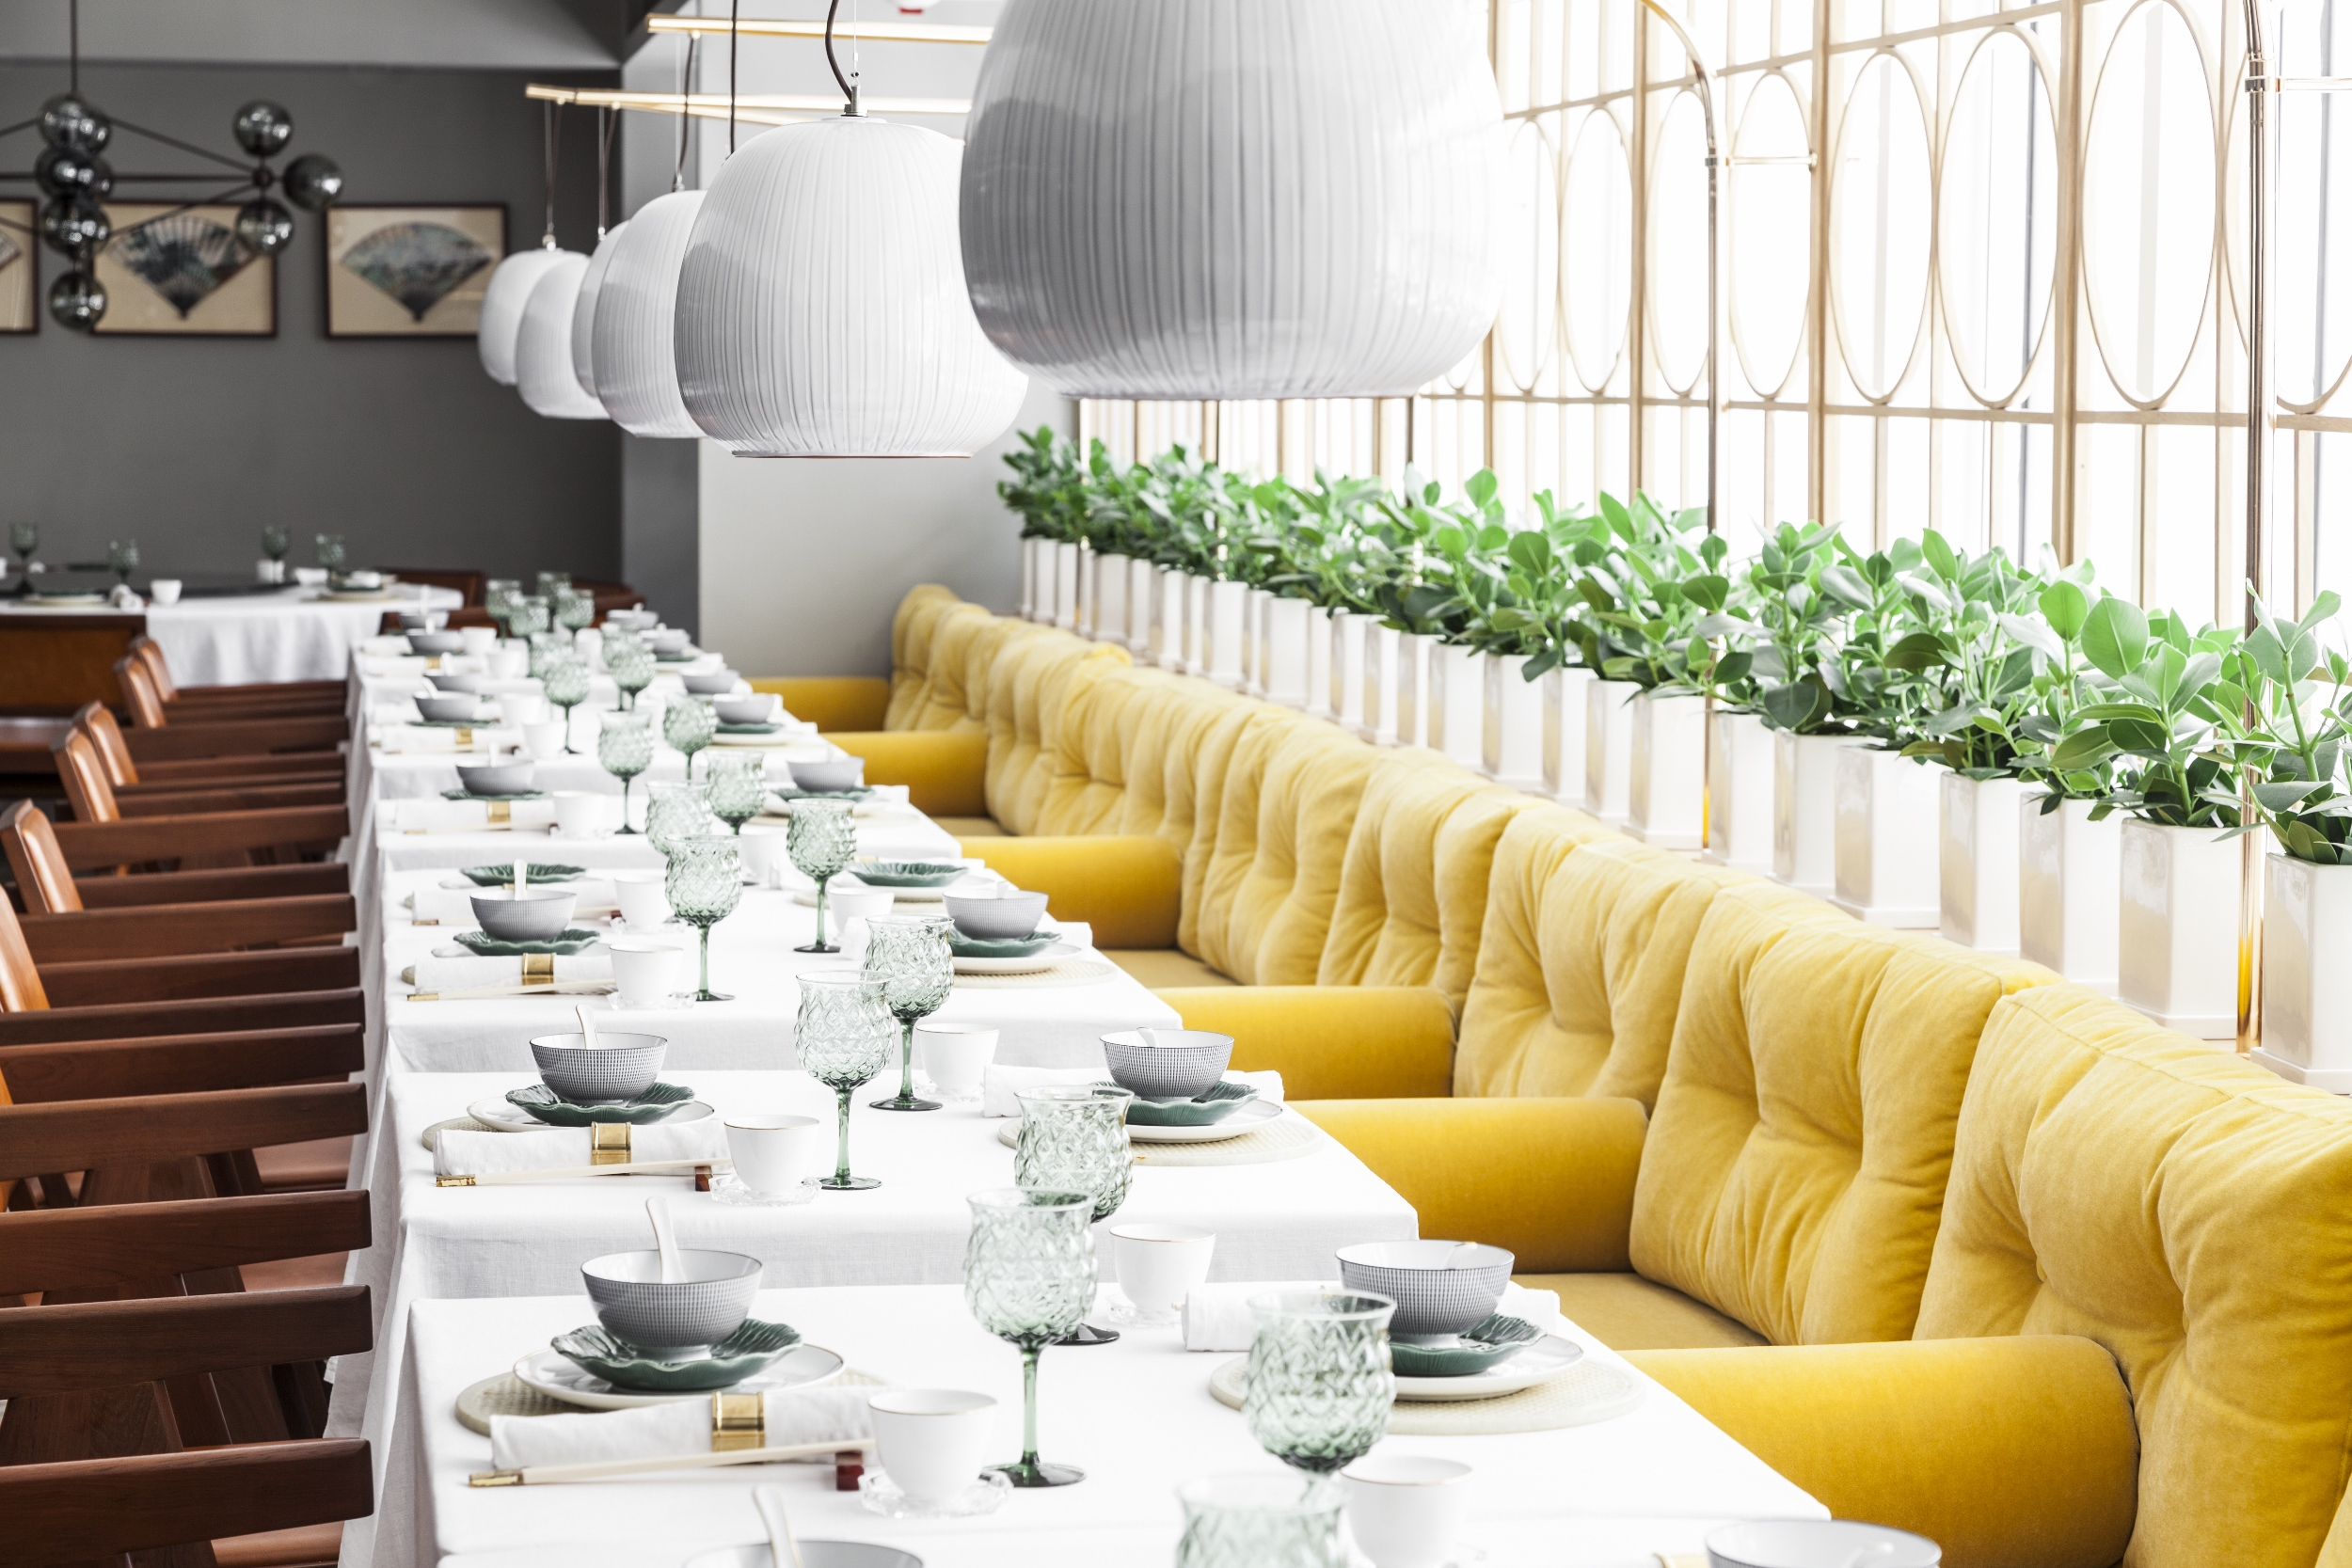 Plush leather chairs face yellow velvet banquettes in the airy third-floor dining room, lit by 'Gooseberry' pendants